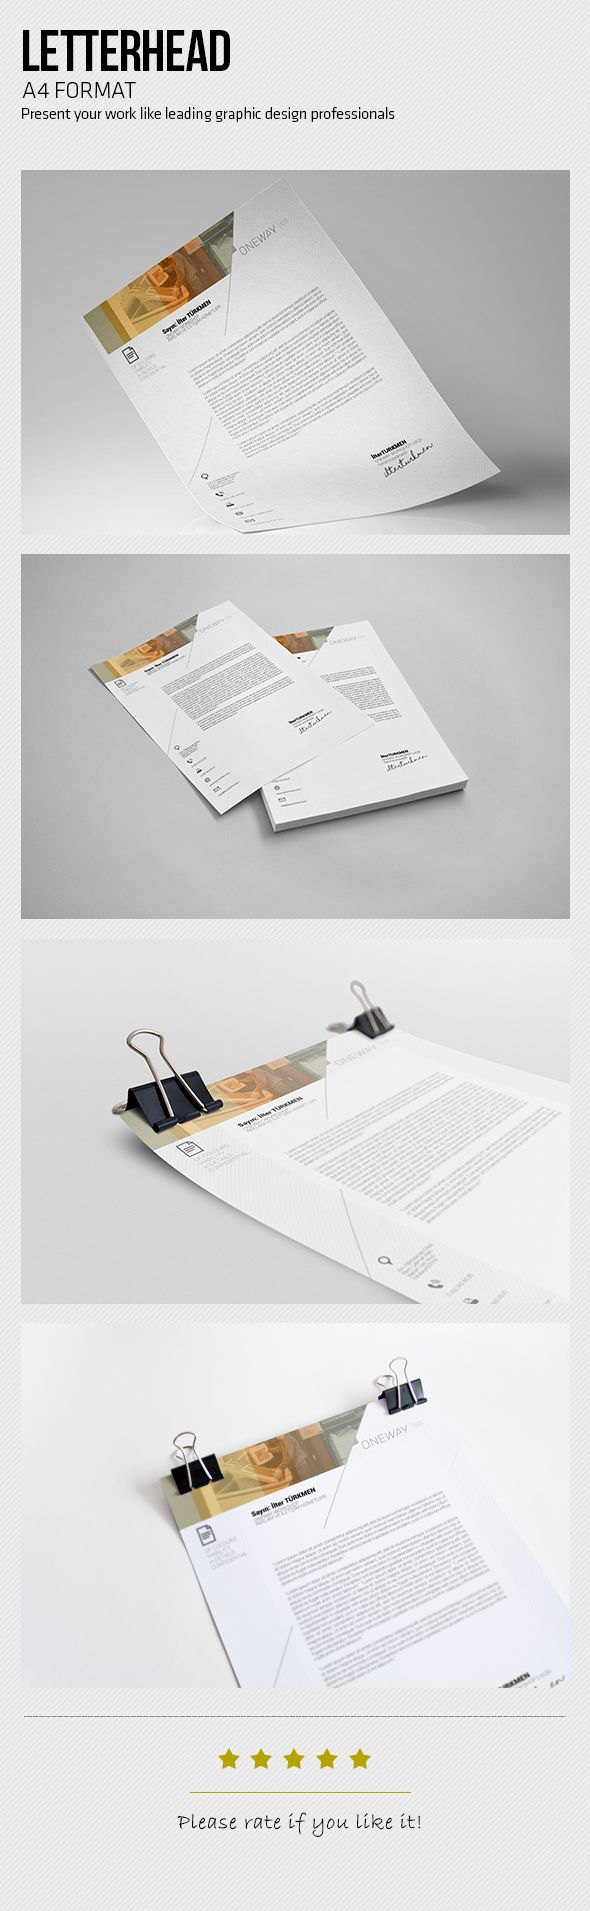 a4, blue, branding, business, colorful, corporate, creative, gradient, green, grey, identity, informative, innovative, iso, letter, letterhead, light, modern, neat, orange, presentation, print ready, professional, purple, rectangle, red, simple